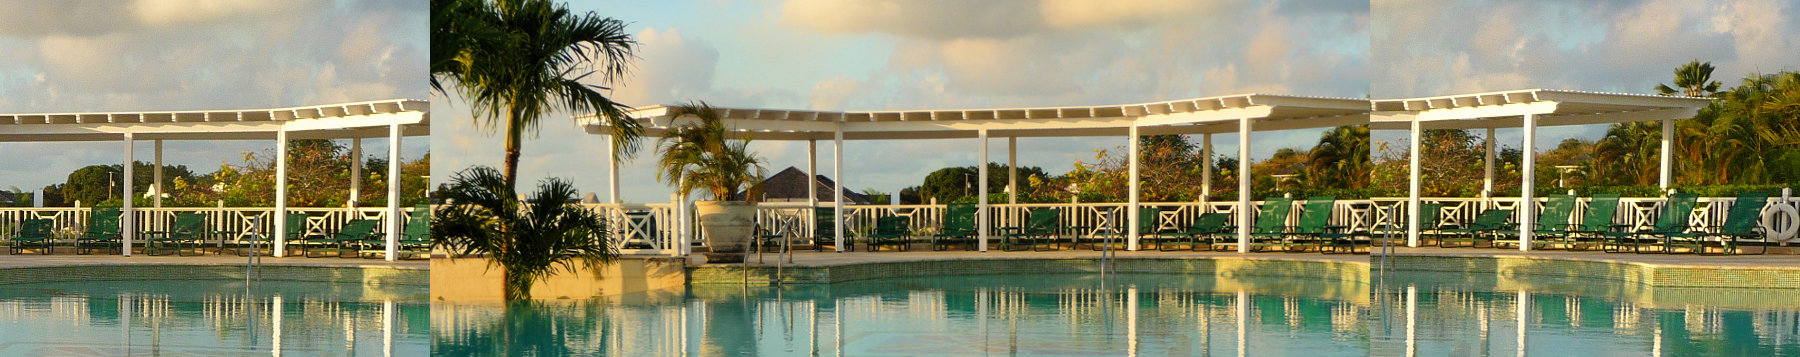 Swimming pool resort Barbados